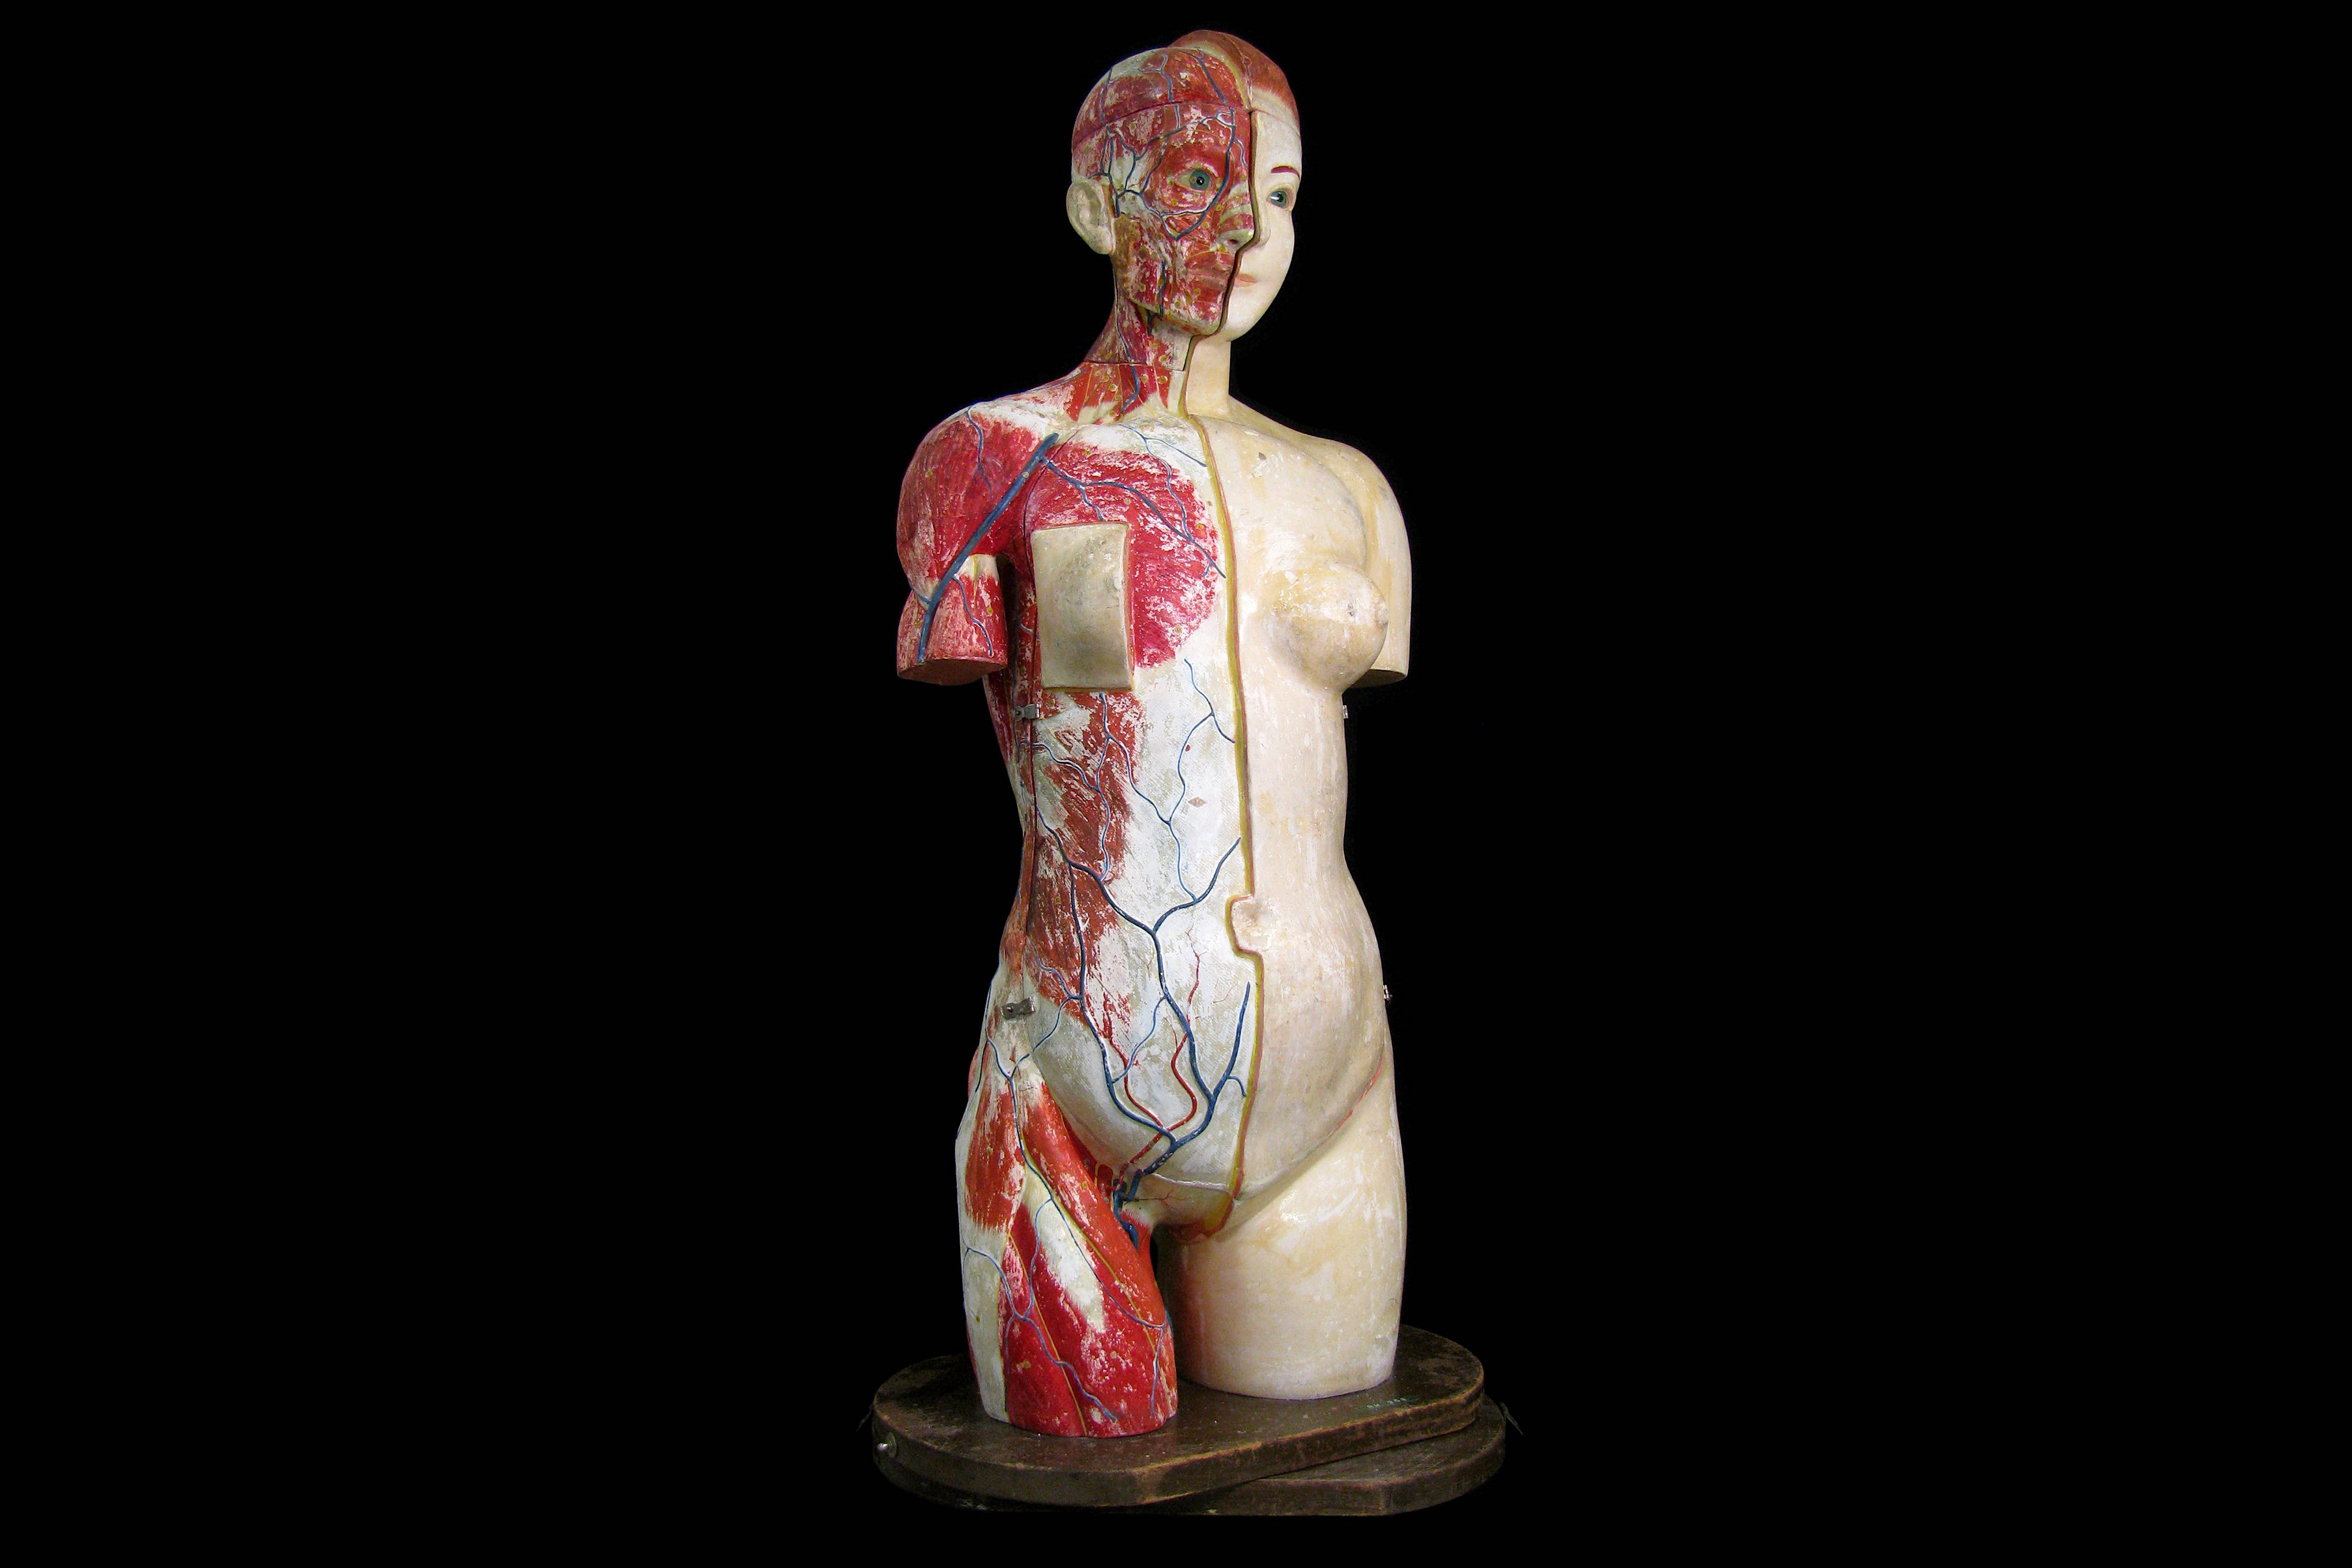 A FINE 1930'S JAPANESE LIFE-SIZE ANATOMICAL MODEL TORSO OF THE FEMALE FIGURE PRODUCED IN 1934 BY THE - Image 3 of 9